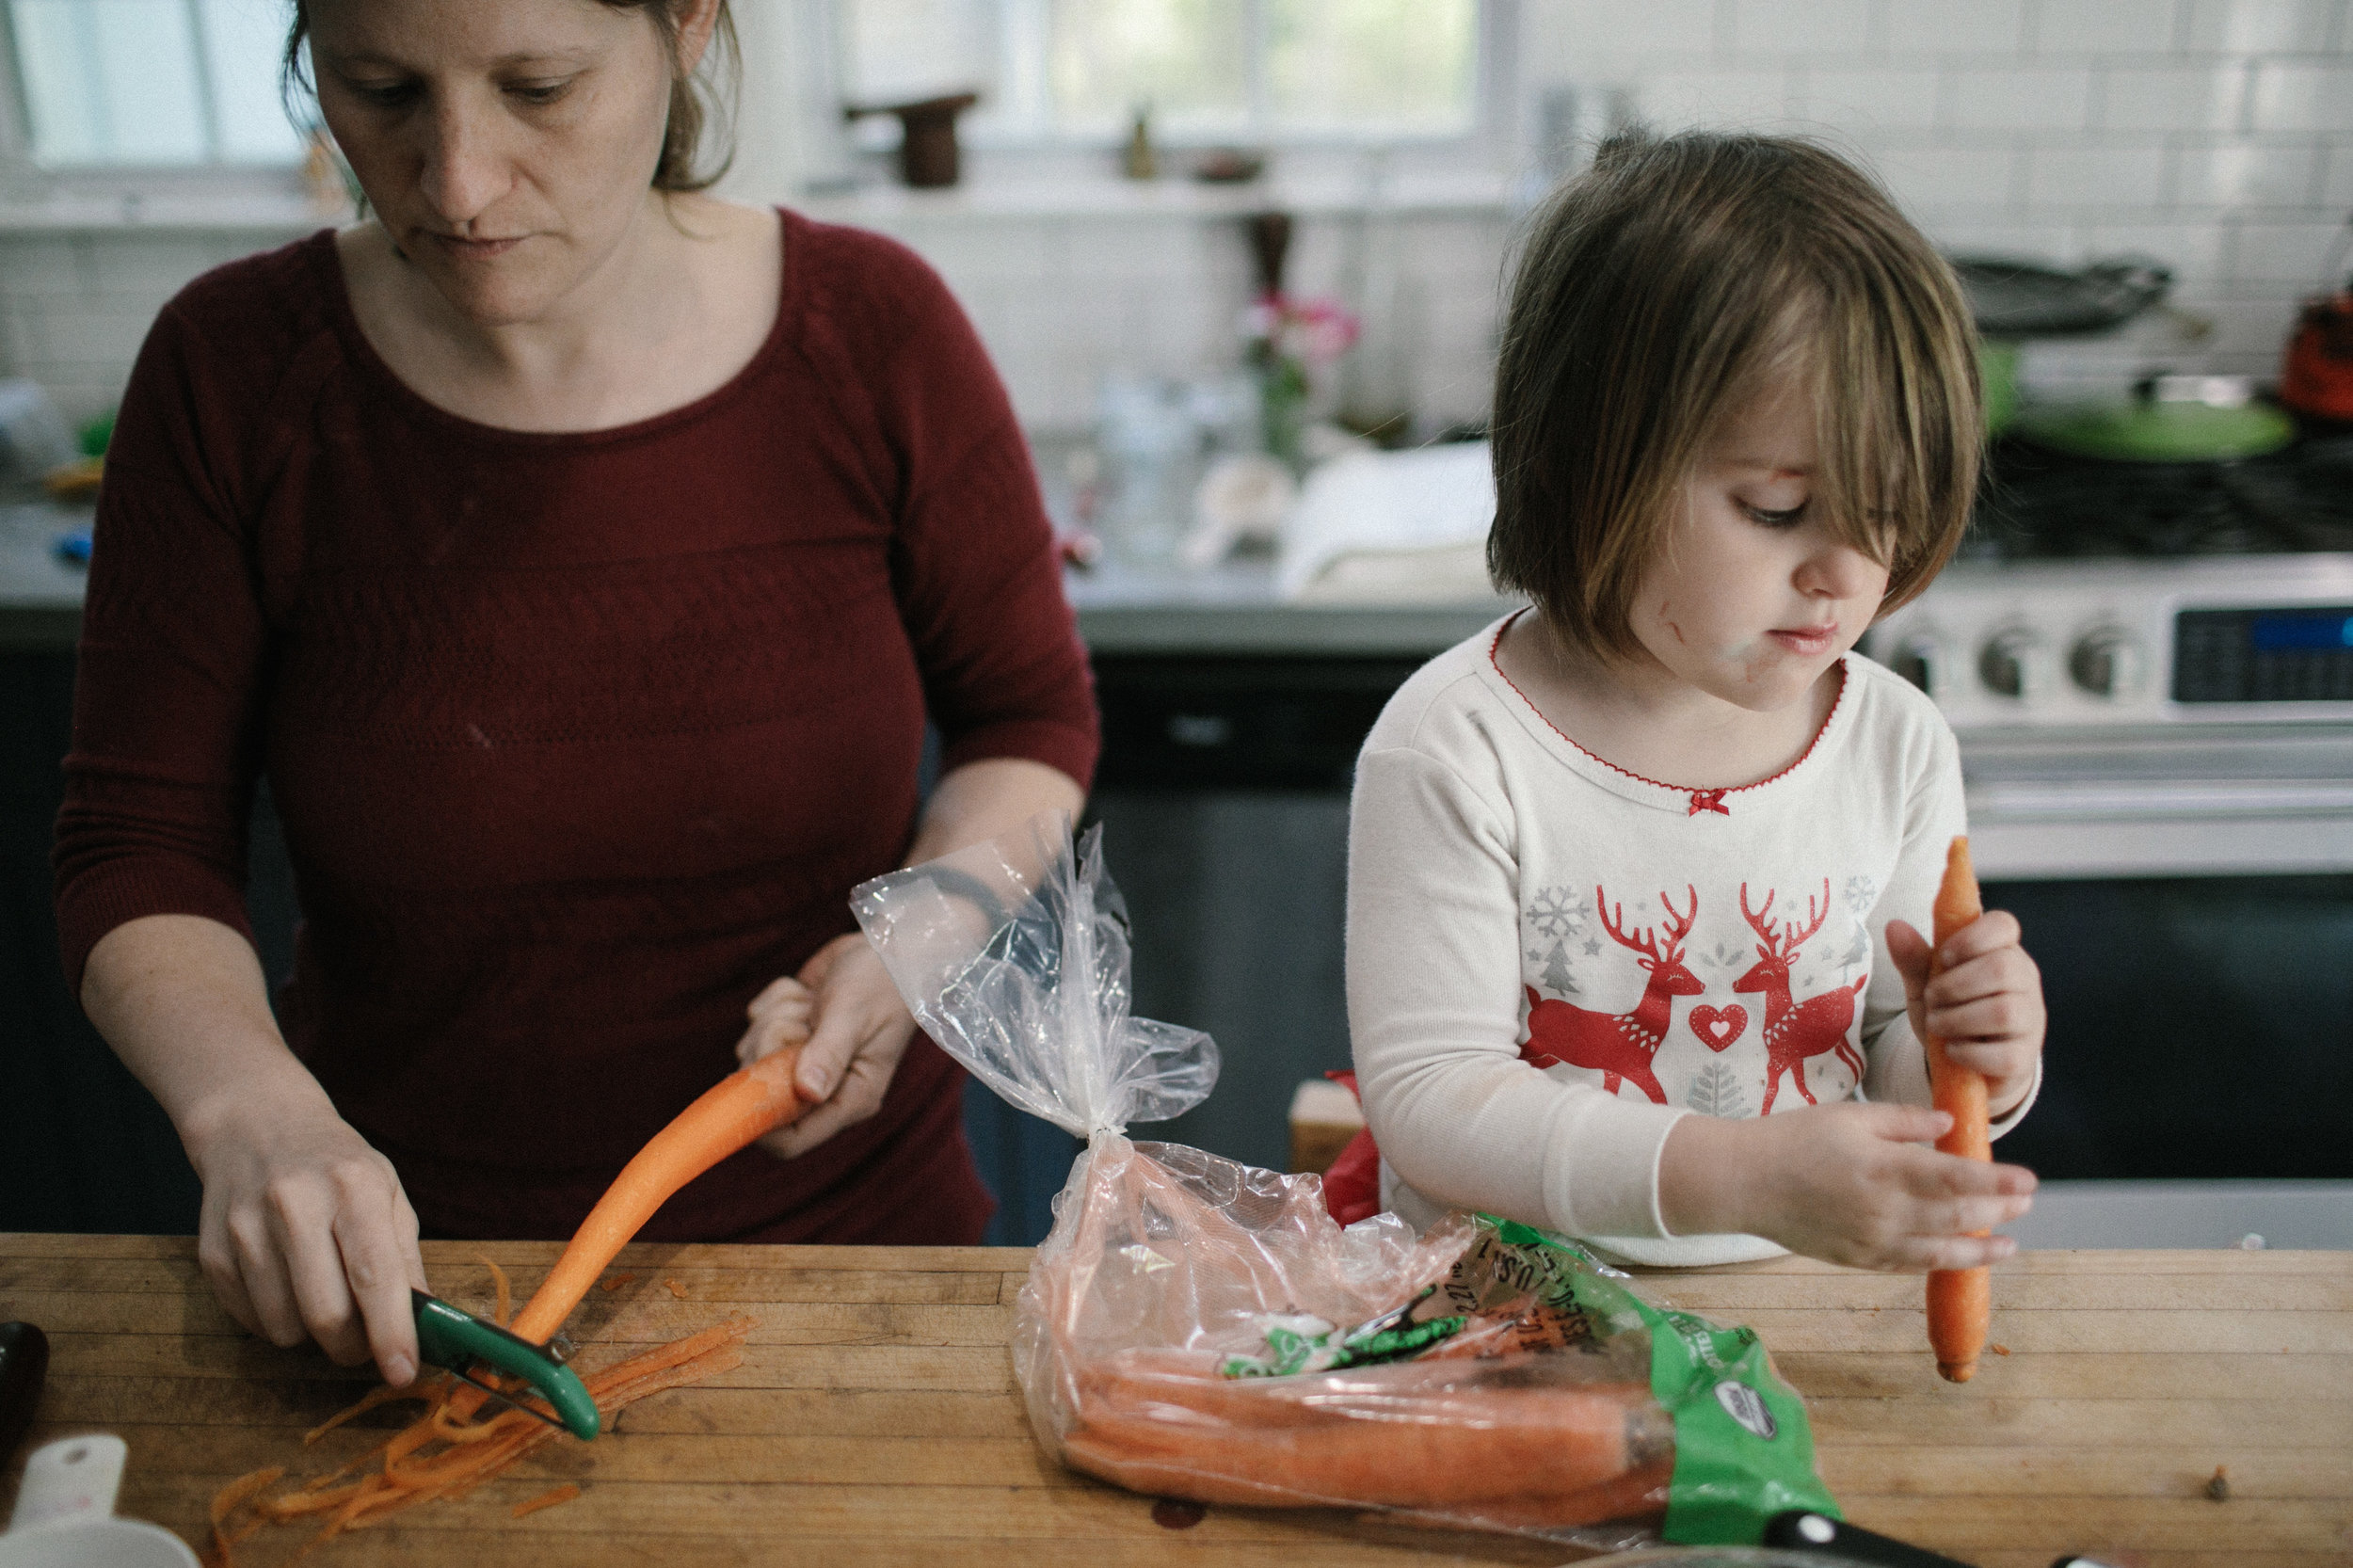 a woman peels a carrot and a girl looks at one